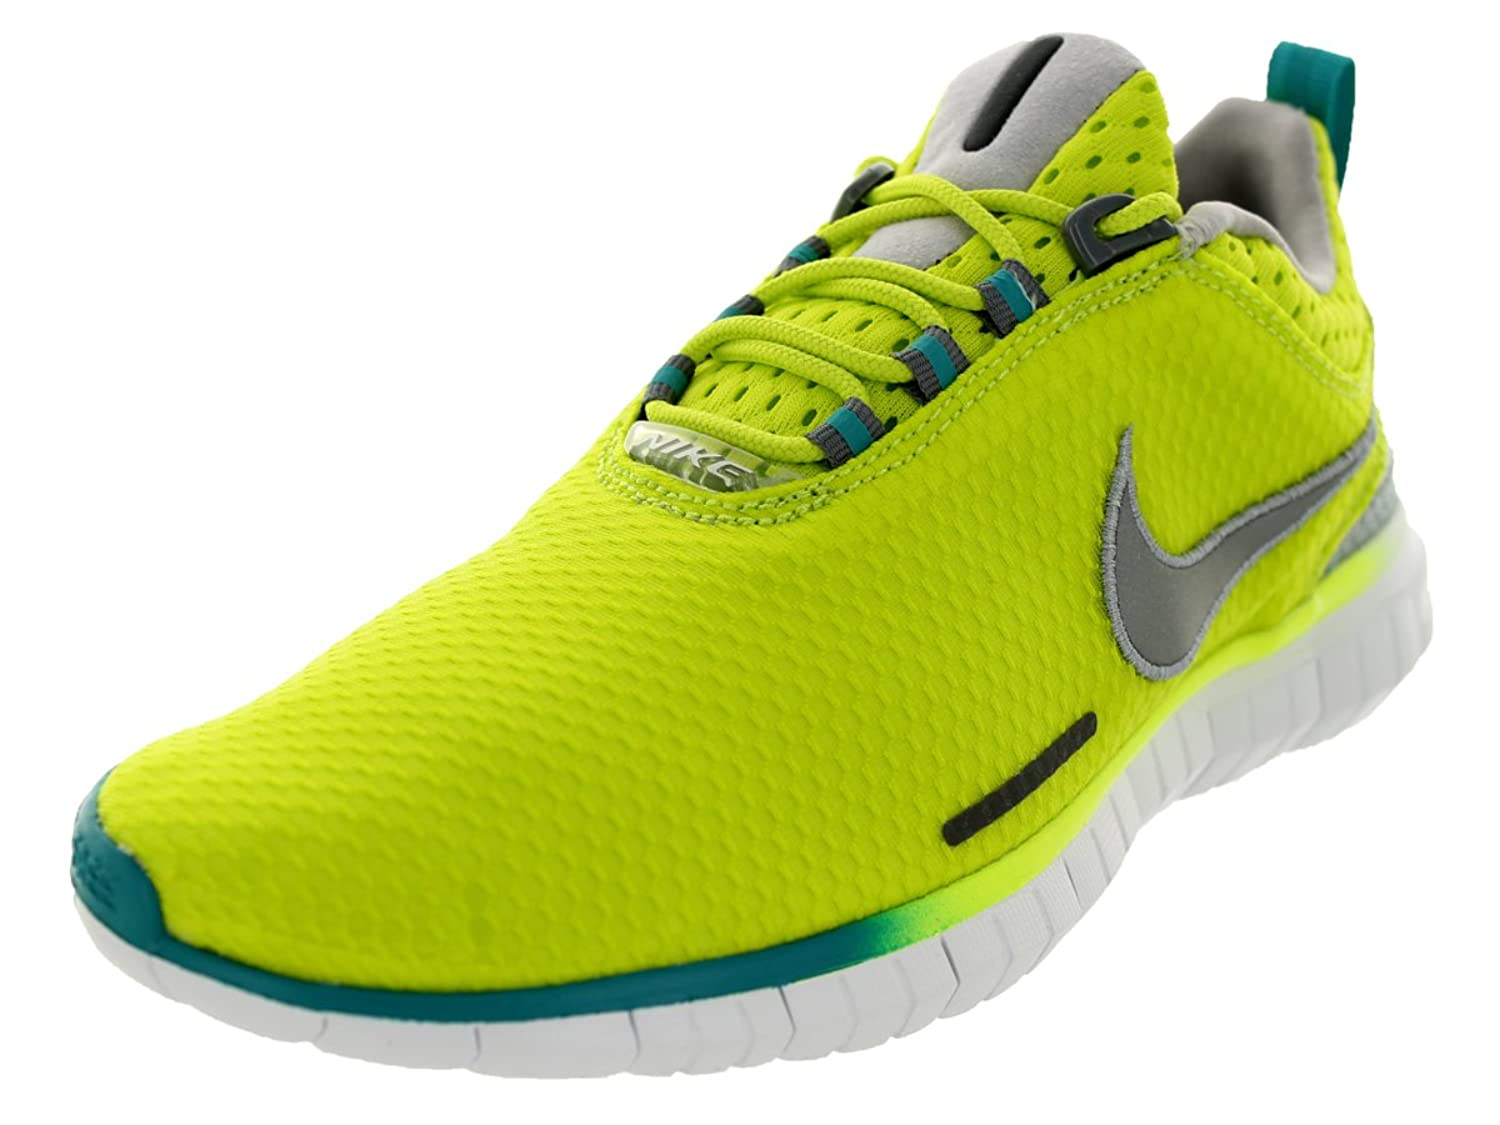 uk availability c4622 94d4e purchase running road nike 14 womens og free shoes wy4irw d7049 5175c